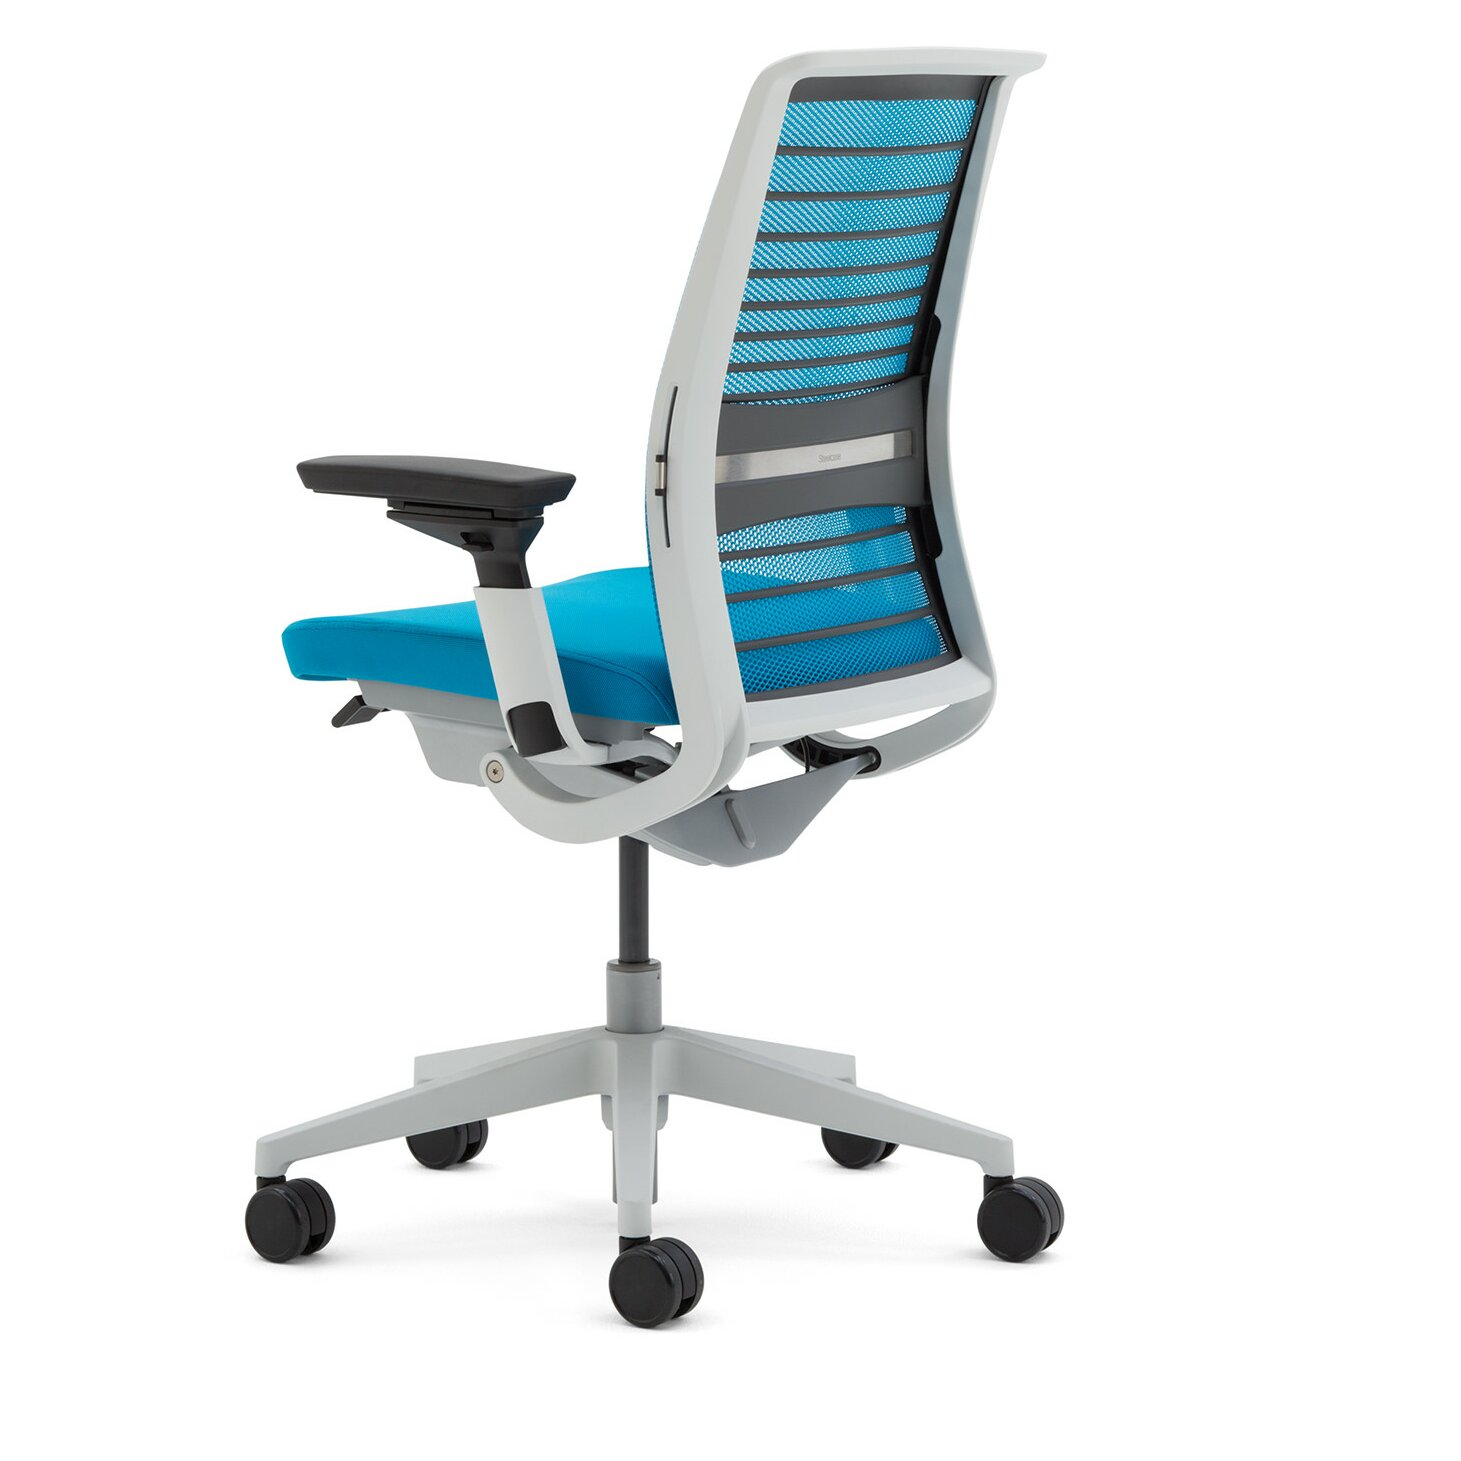 Steelcase think 3d knit back office chair reviews wayfair for Steelcase chairs